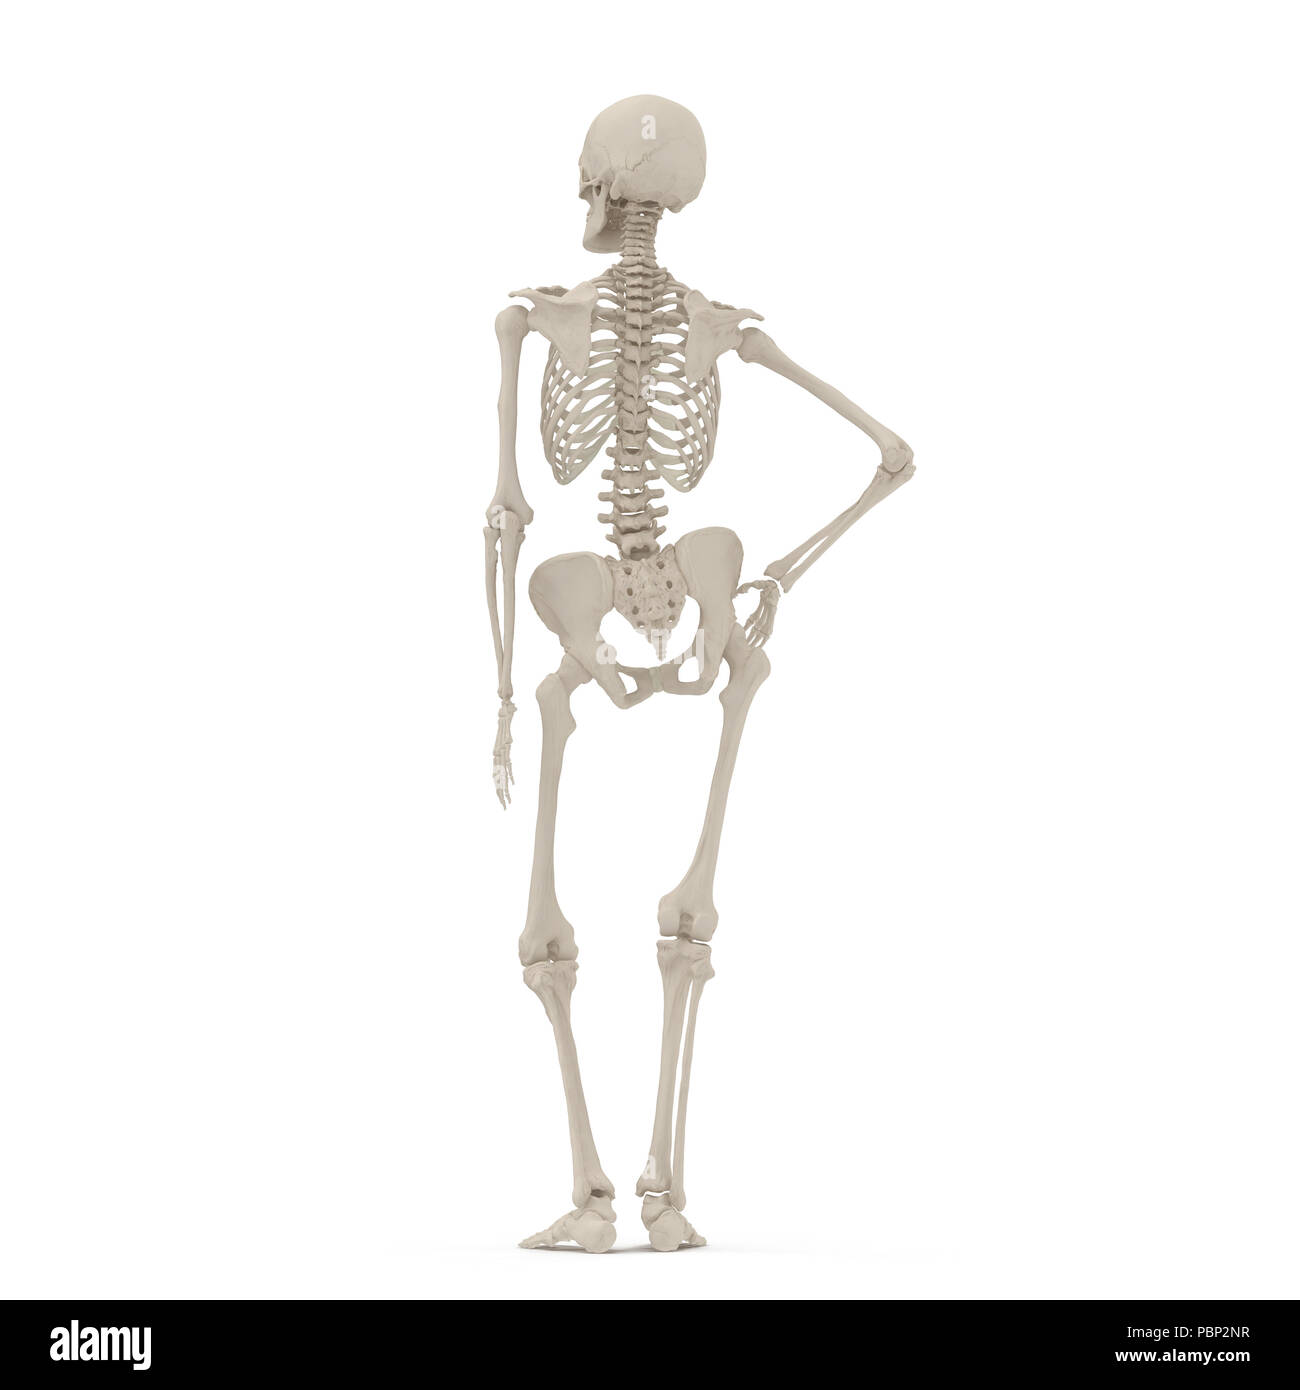 Human Female Skeleton Standing Pose On White 3d Illustration Stock